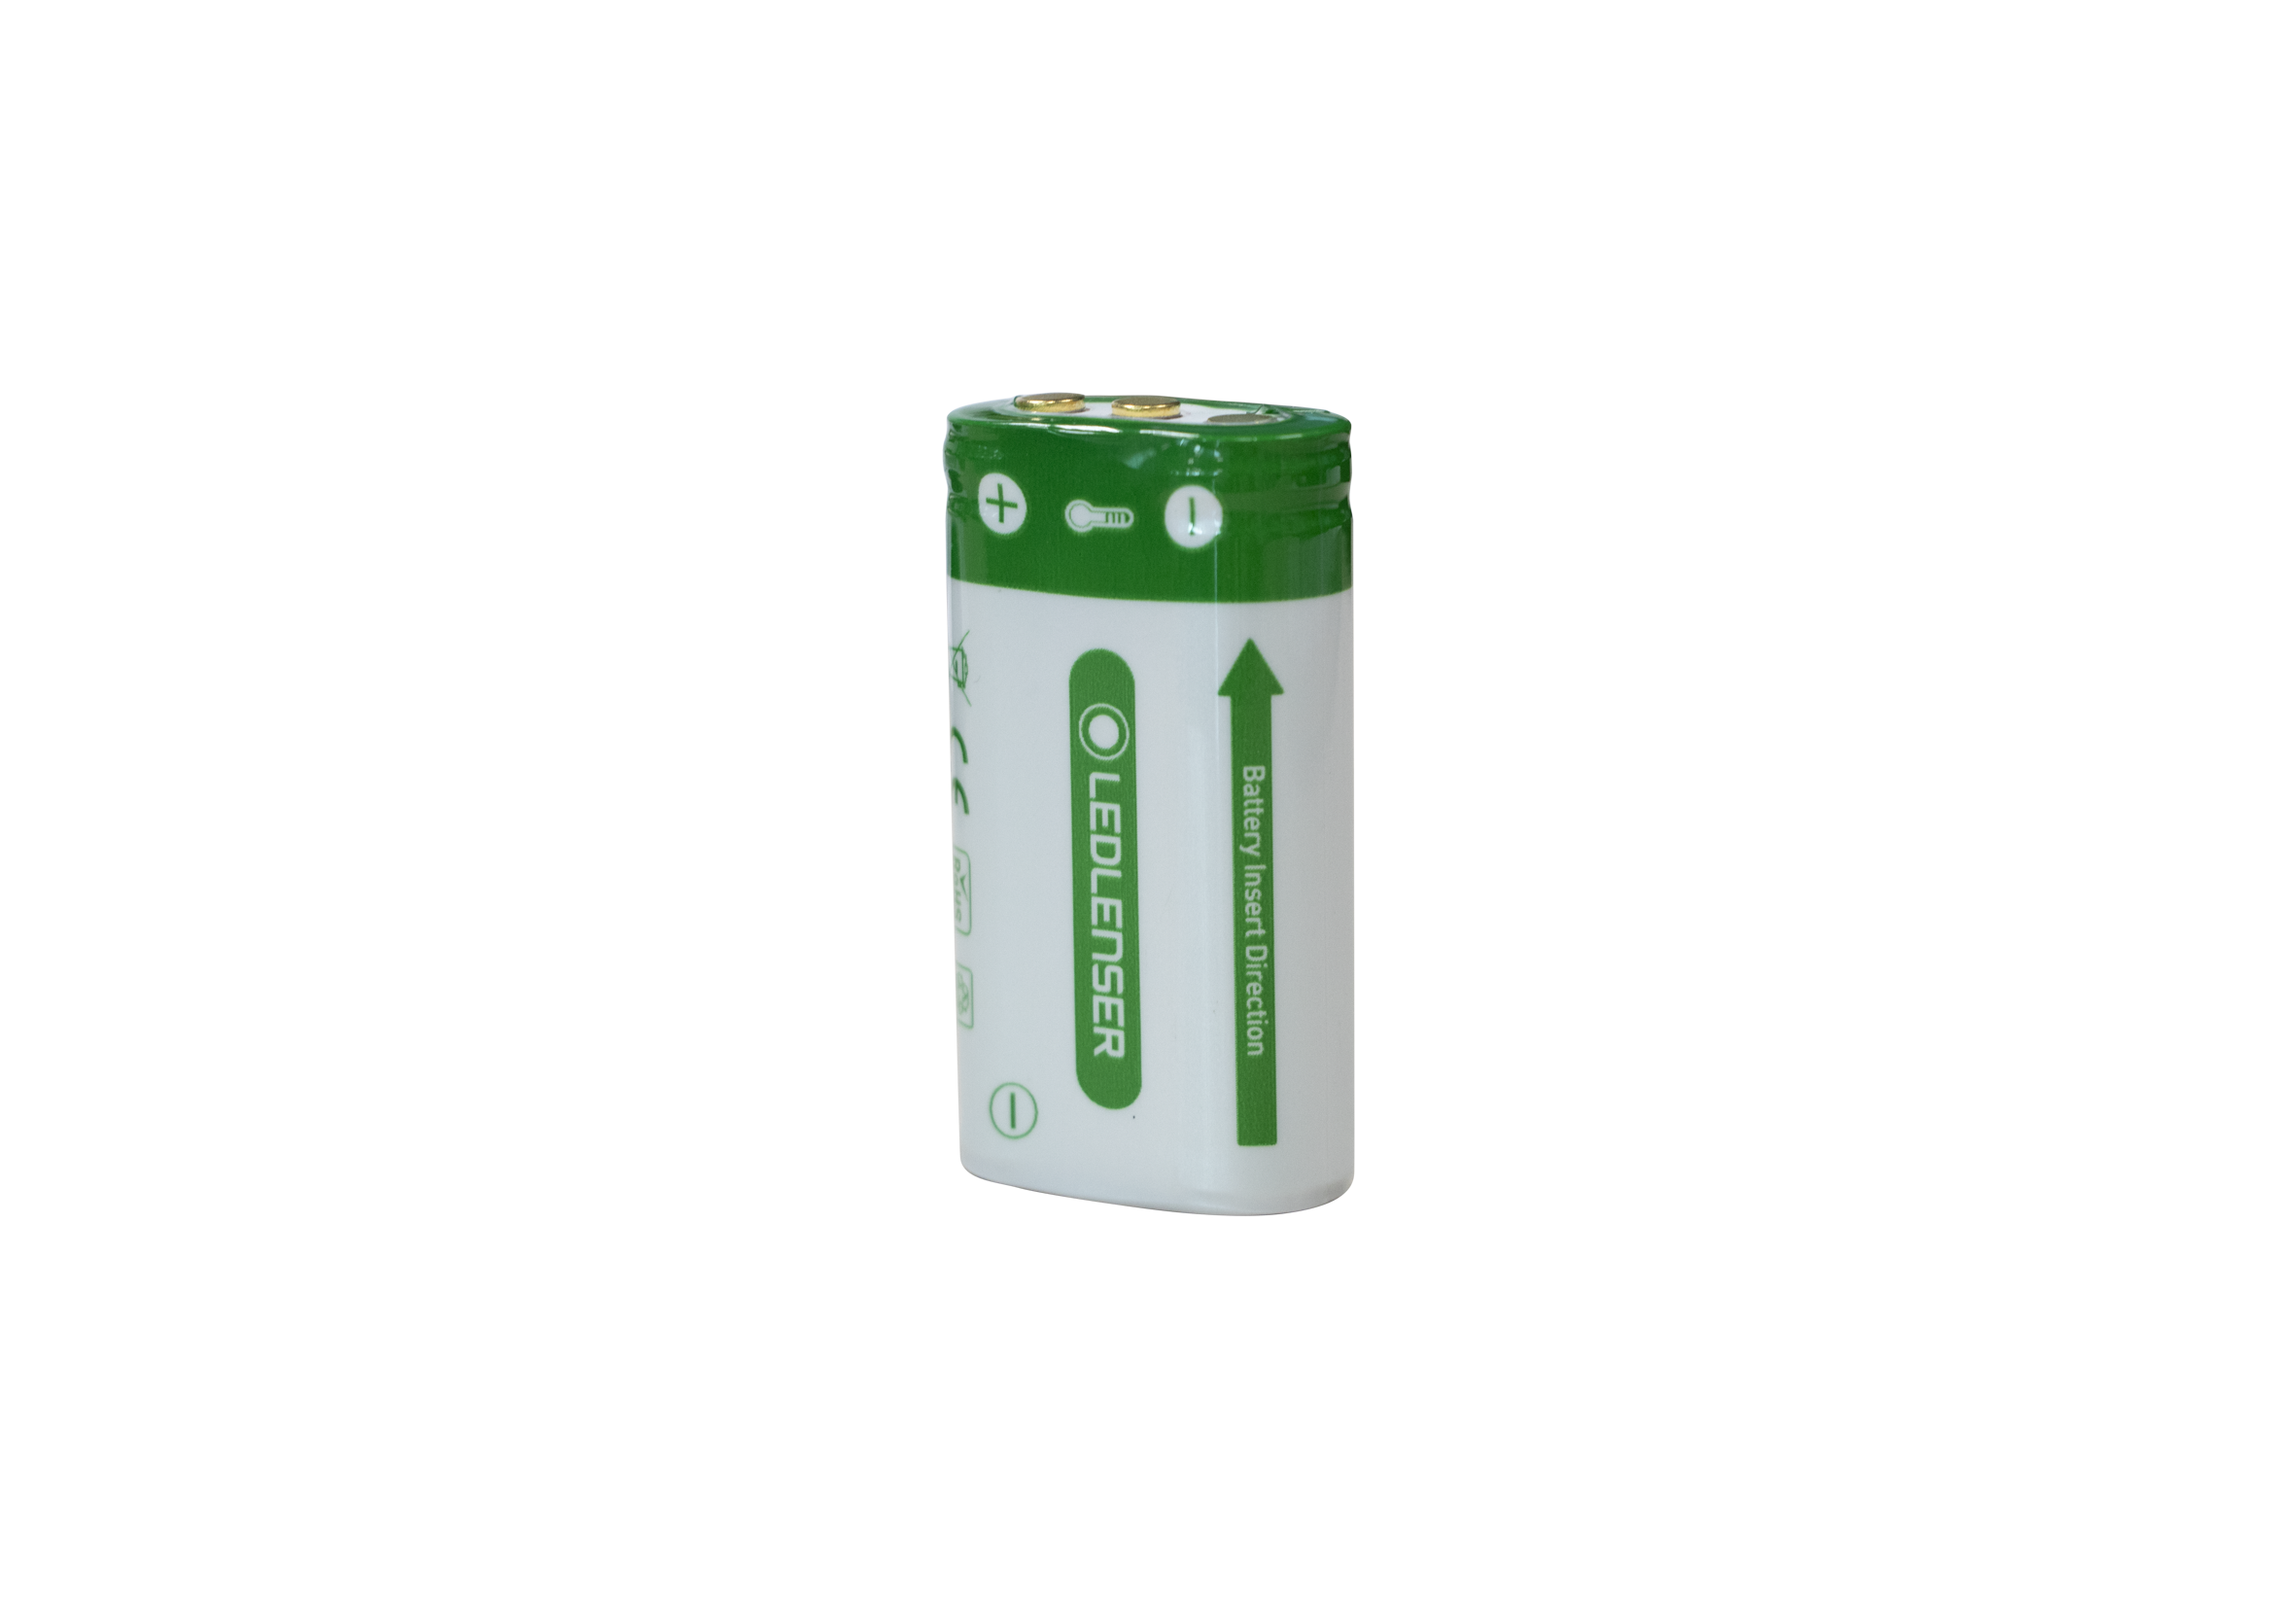 Li-Ion Rechargeable Battery Pack 1550 mAh